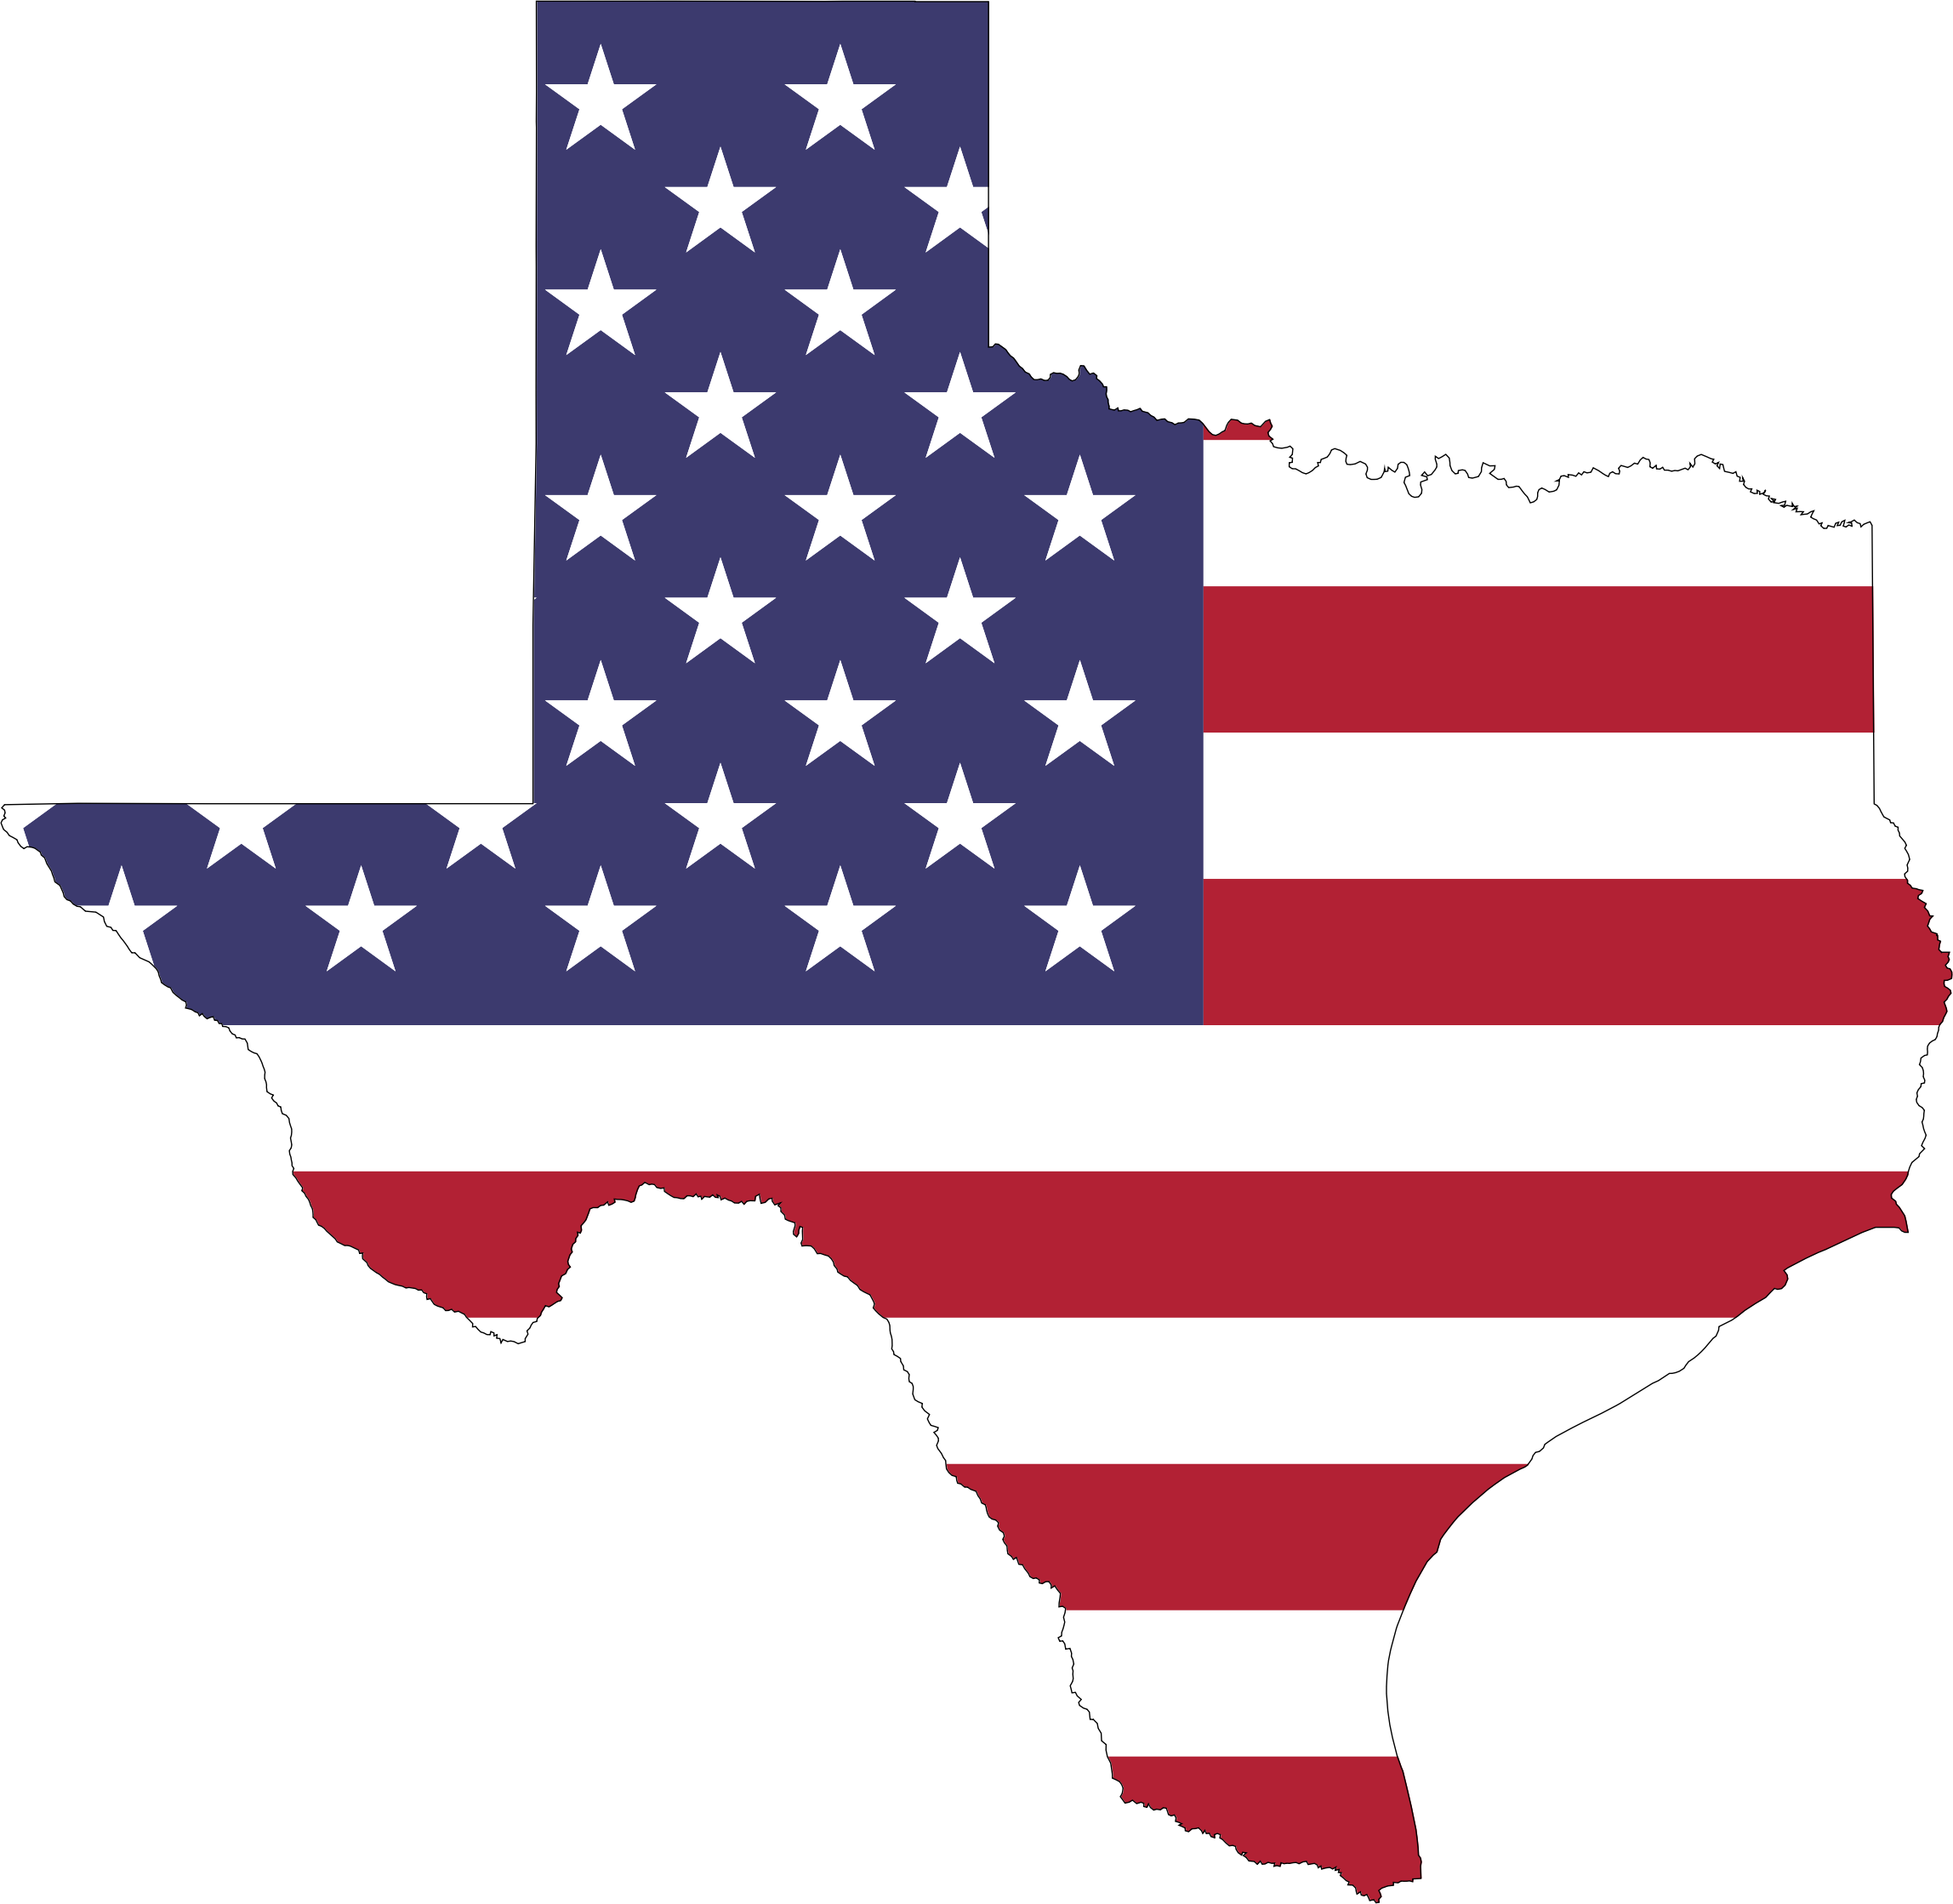 jpg free library American flag map big. Texas flags clipart